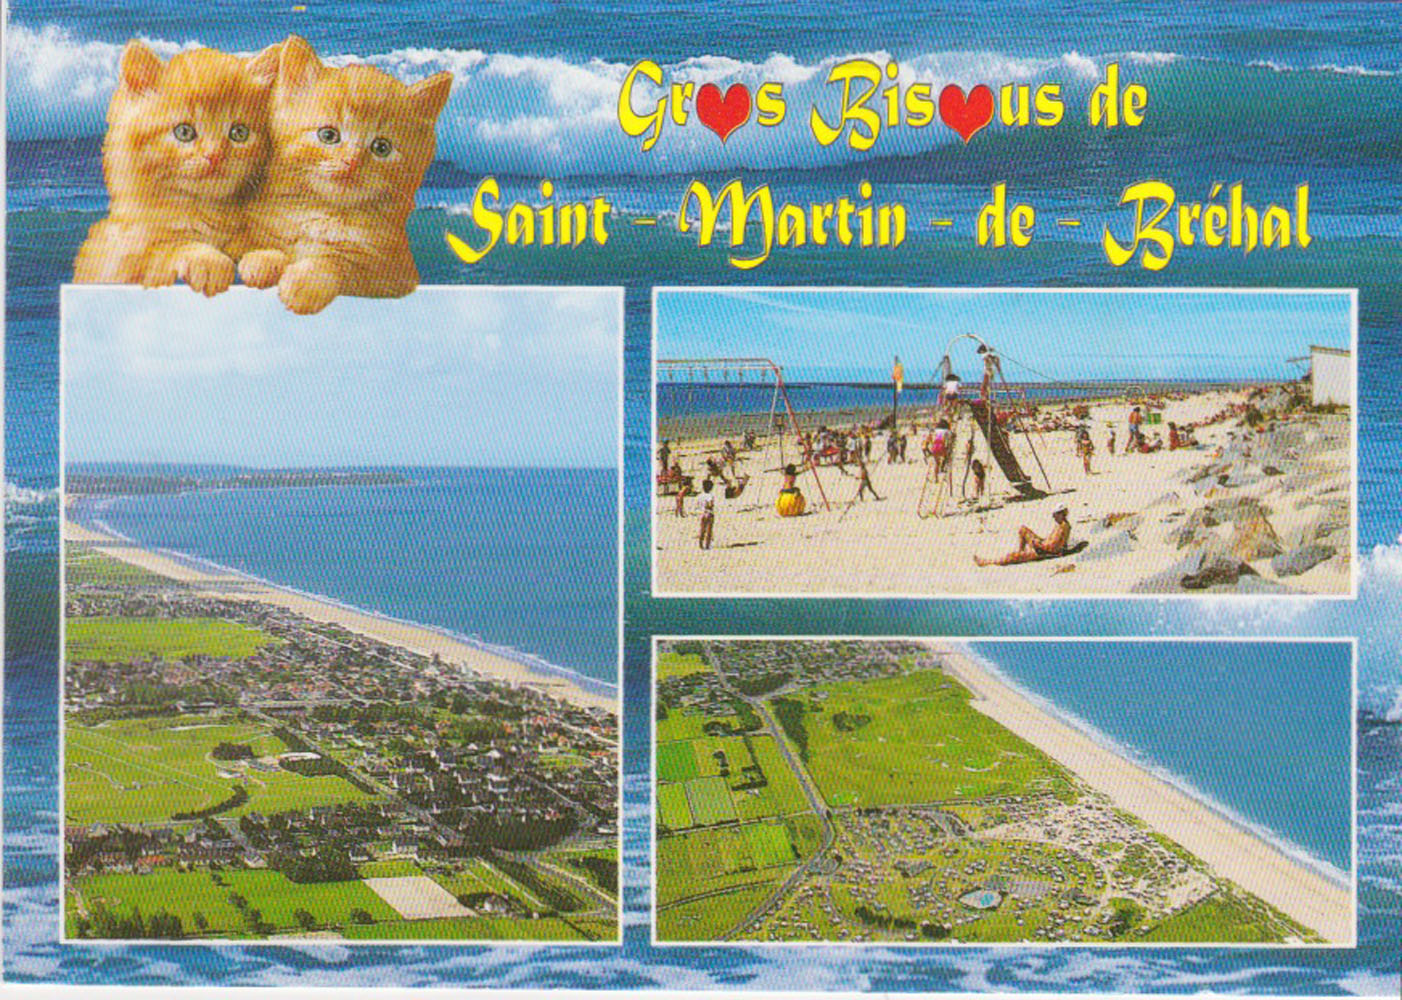 2007 St Martin Multivues Artaud © collection Jean Claude Ferret